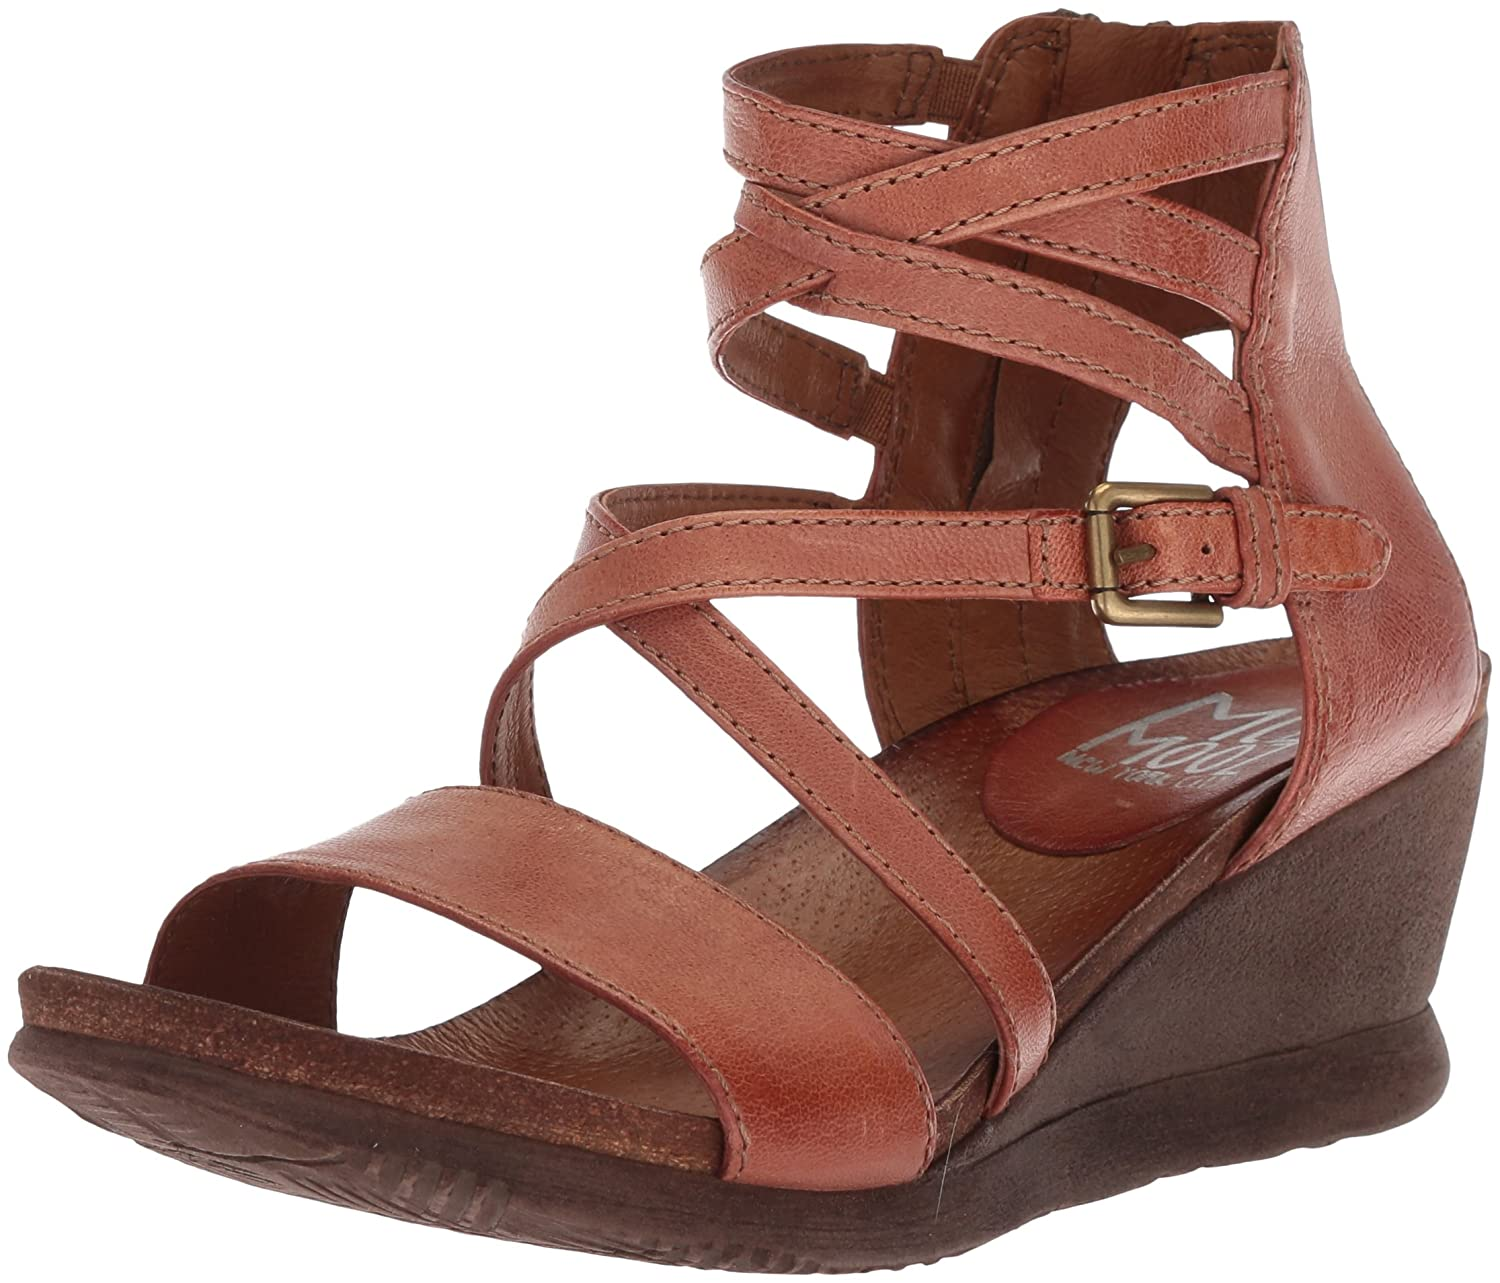 Hazelnut Miz Mooz Women's Shay Fashion Sandals